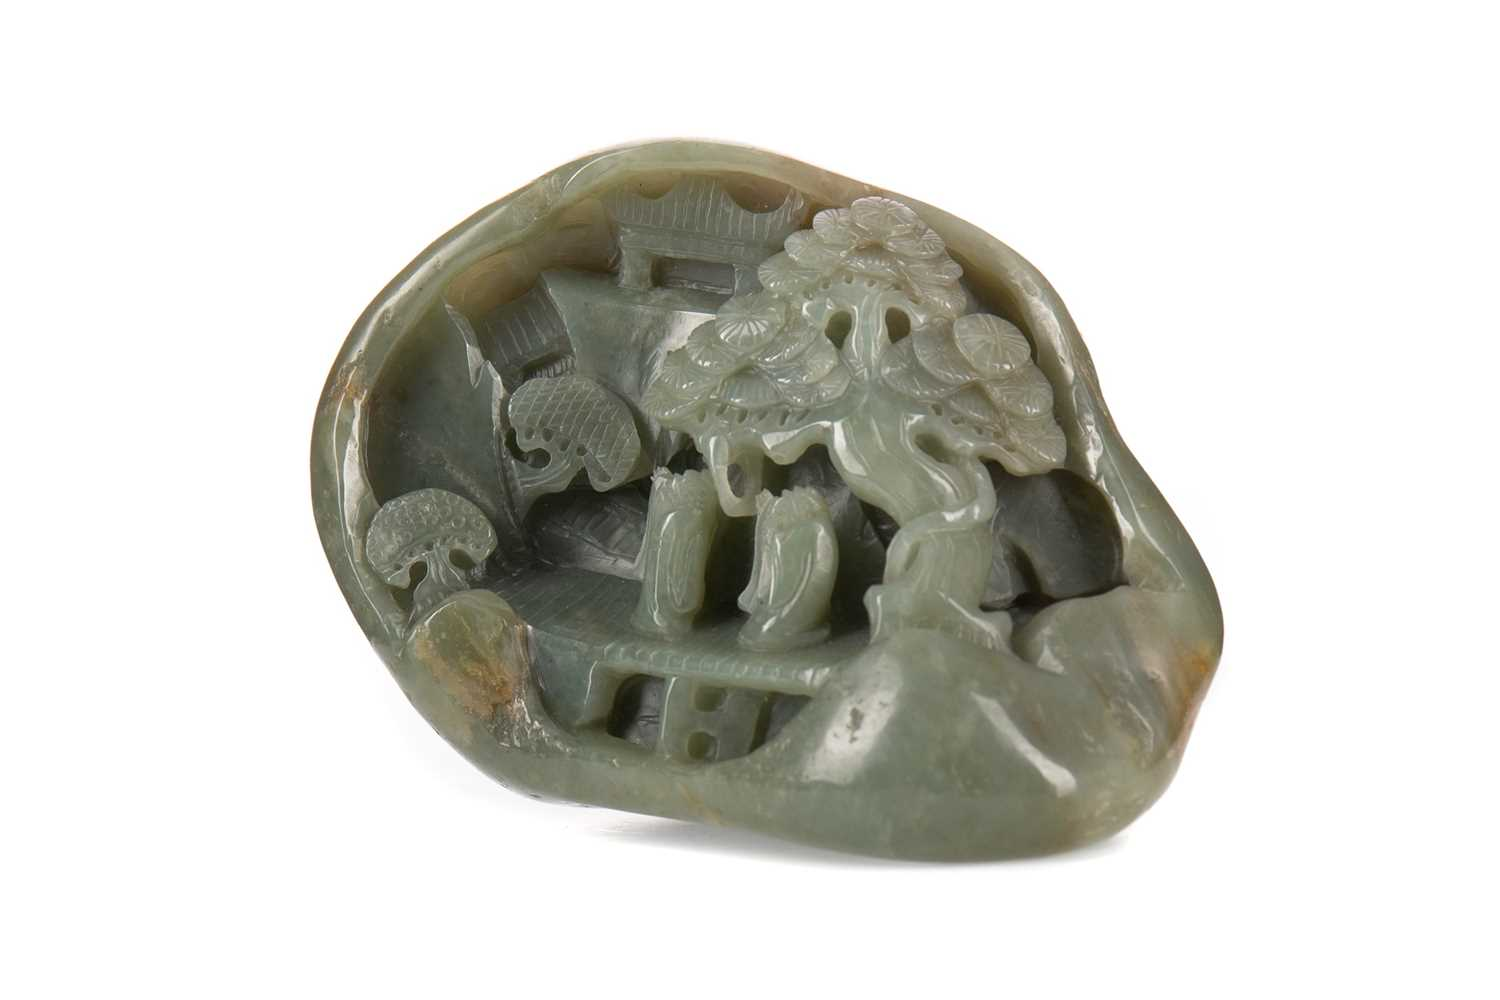 Lot 1610 - A 20TH CENTURY CHINESE JADE DESK WEIGHT